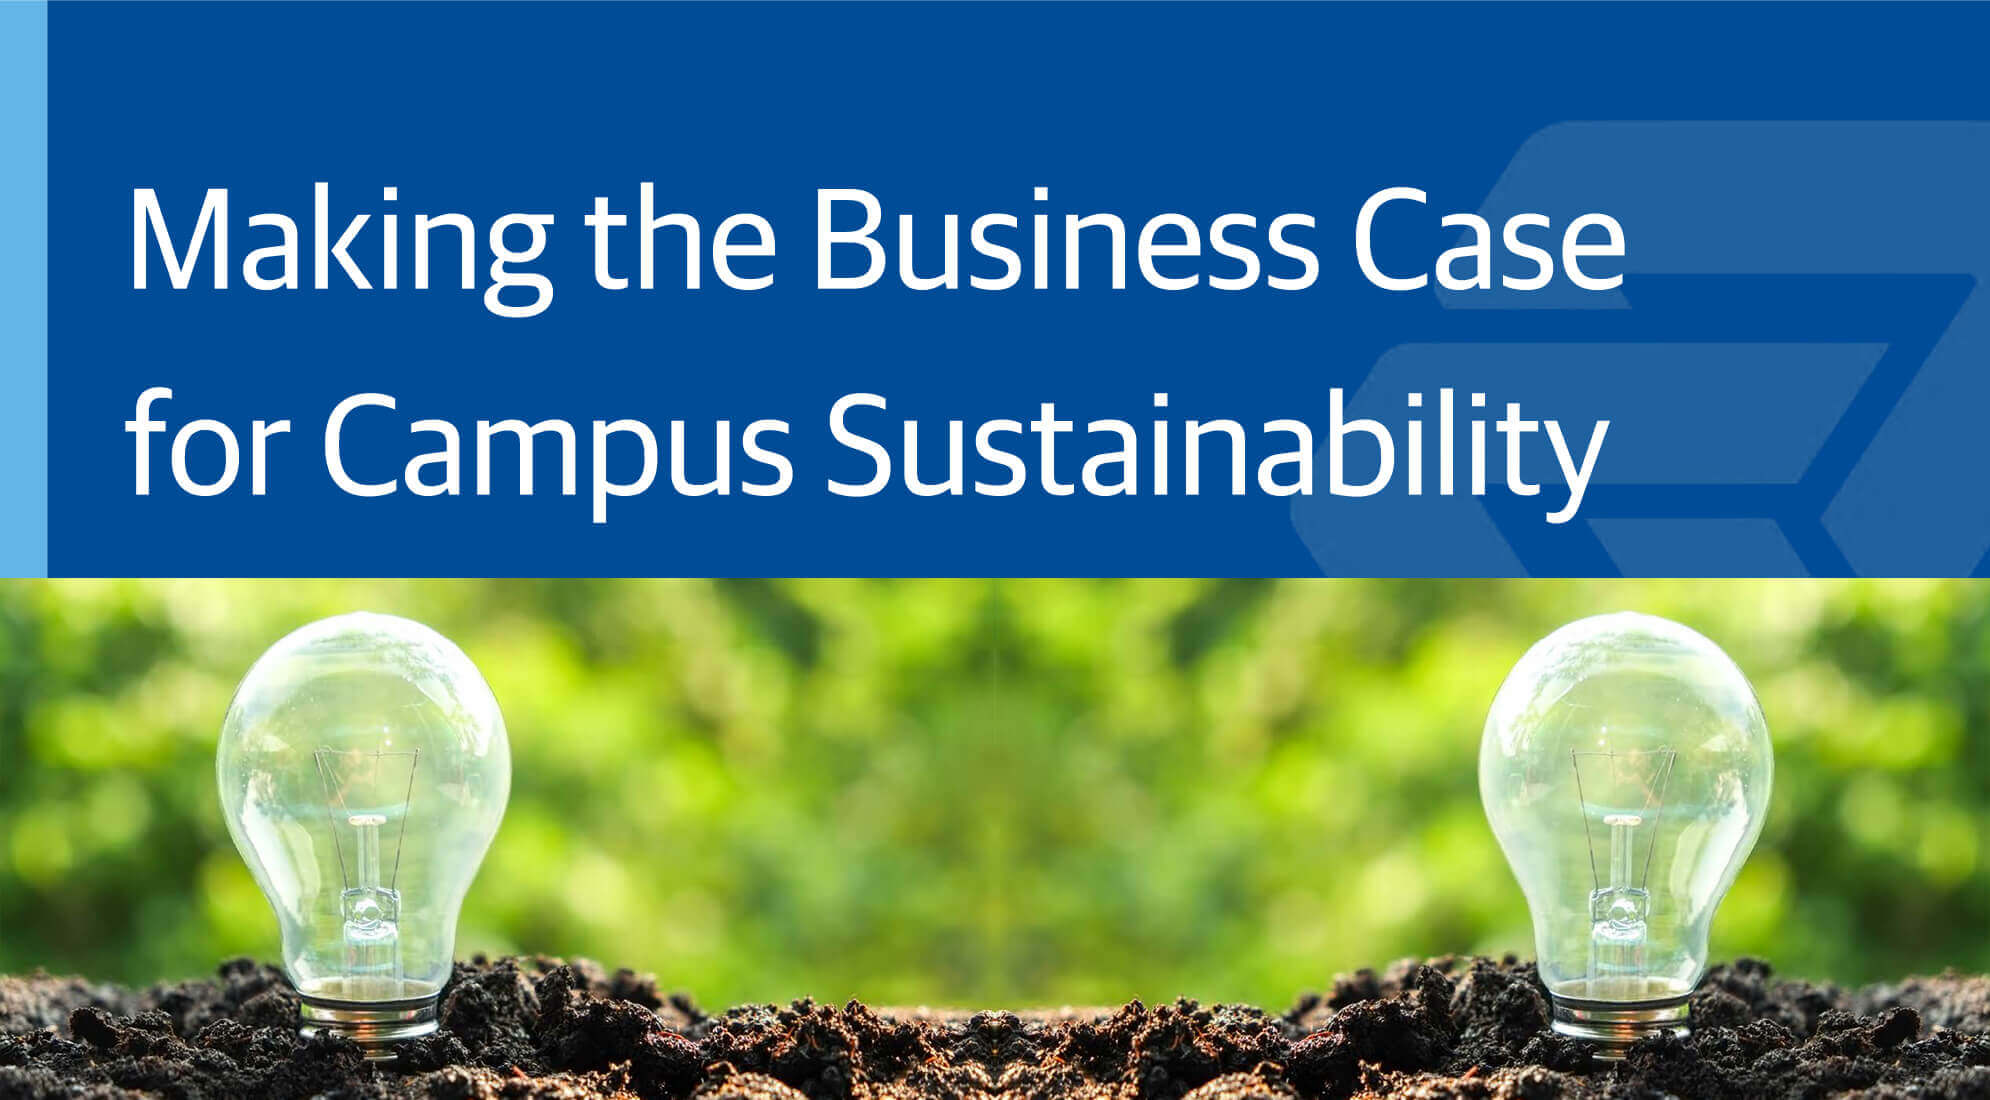 Making the Business Case for Campus Sustainability